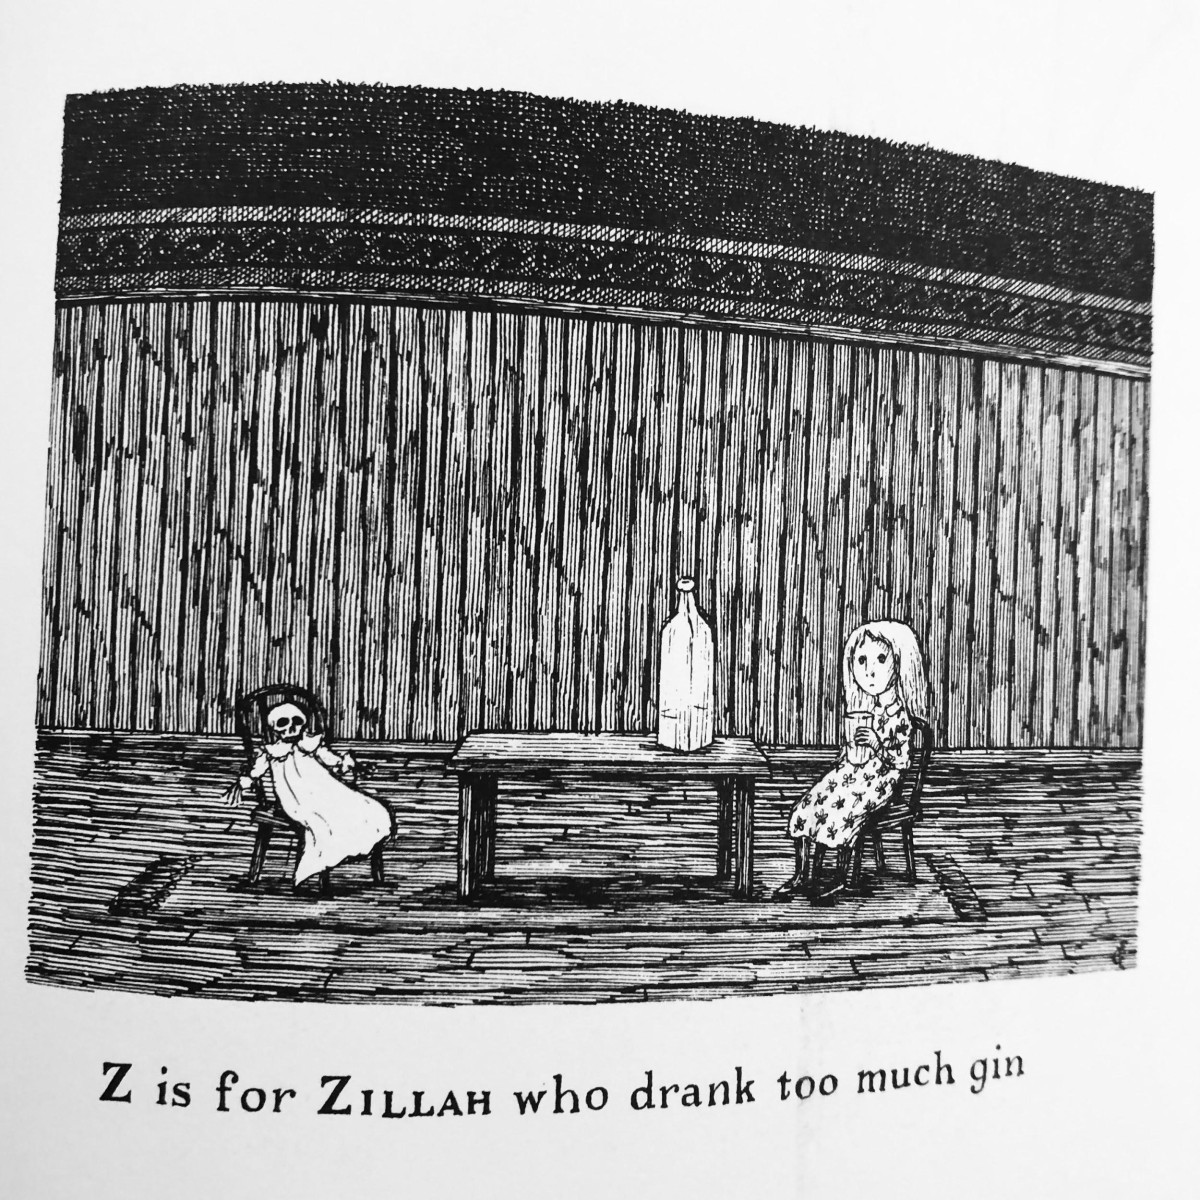 """Black and white illustration taken from The Gashlycrumb Tinies of a two little girls at a table, one skeletal and dead, presumably related to the large bottle atop the table. It is captioned """"Z is for Zillah who drank too much gin."""""""